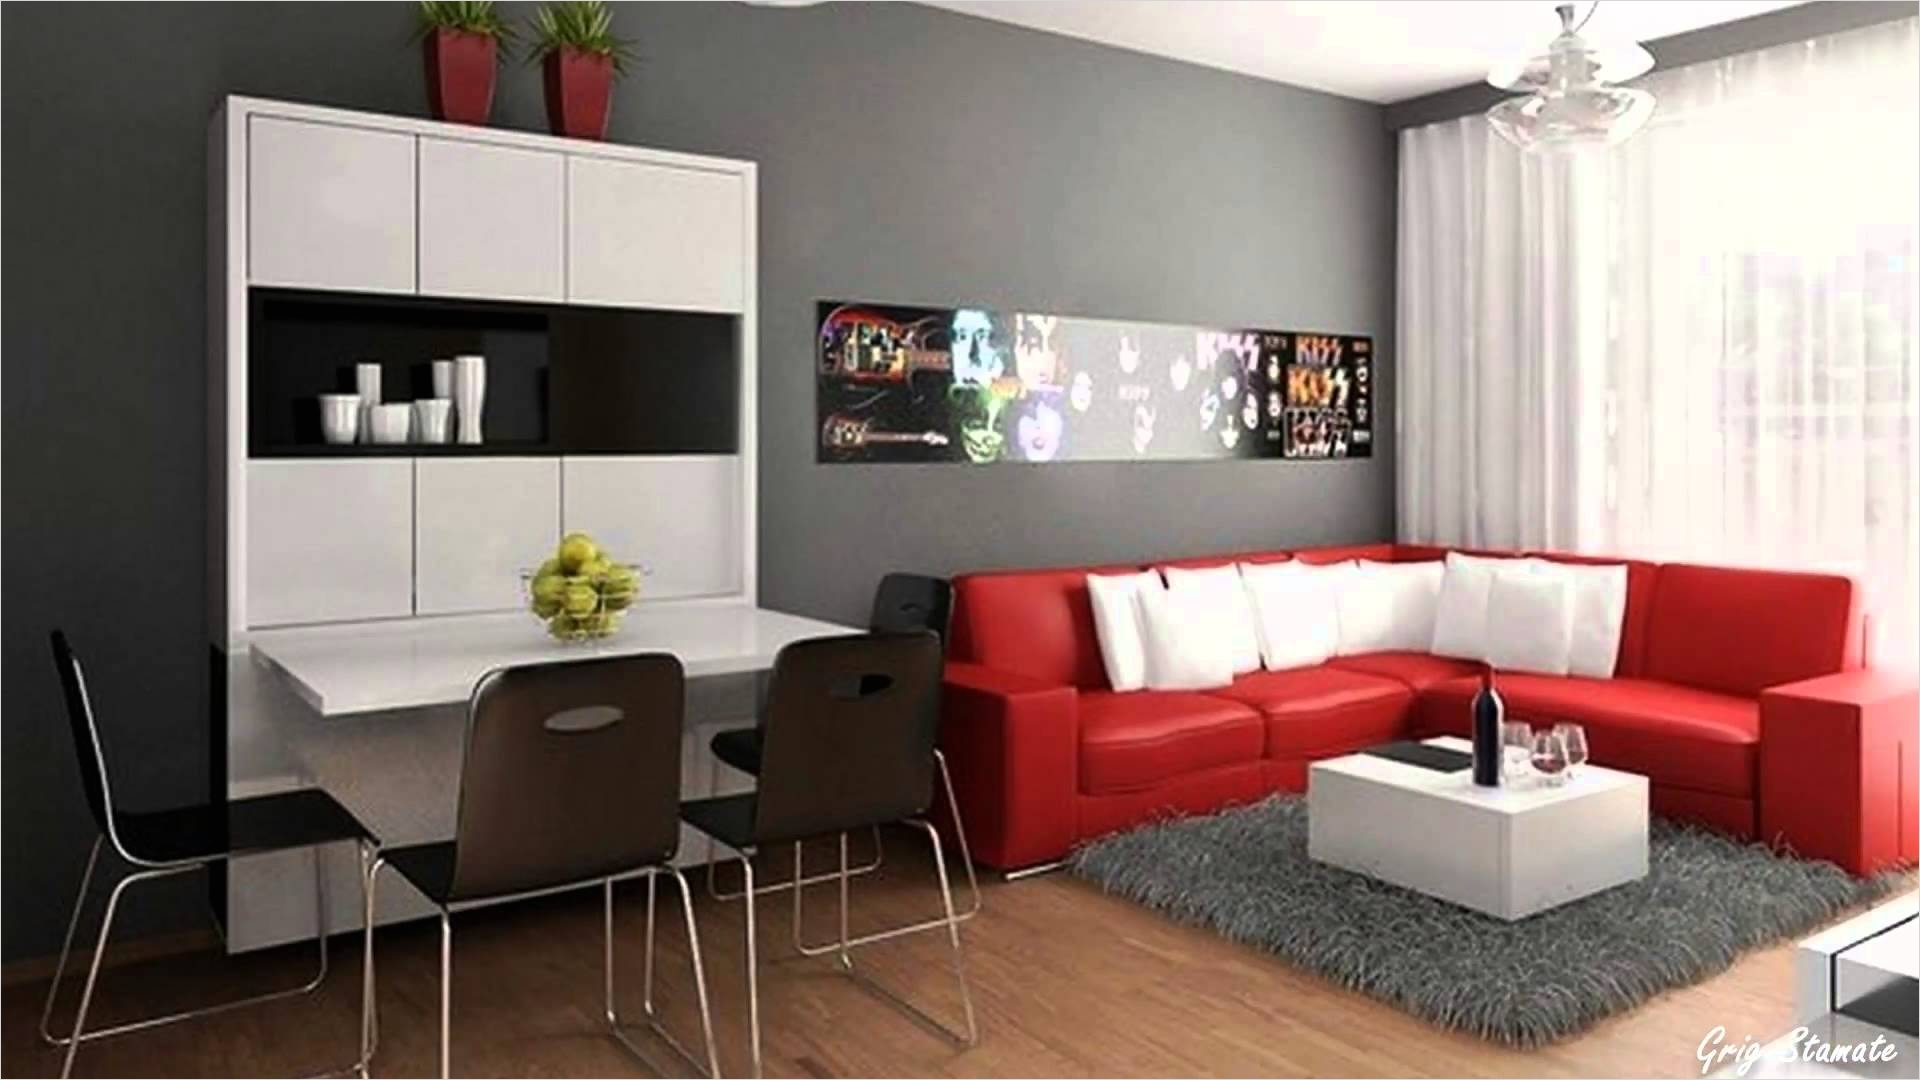 40 Perfect Modern Apartment Decor Ideas 13 Small Modern Apartment Ideas 1